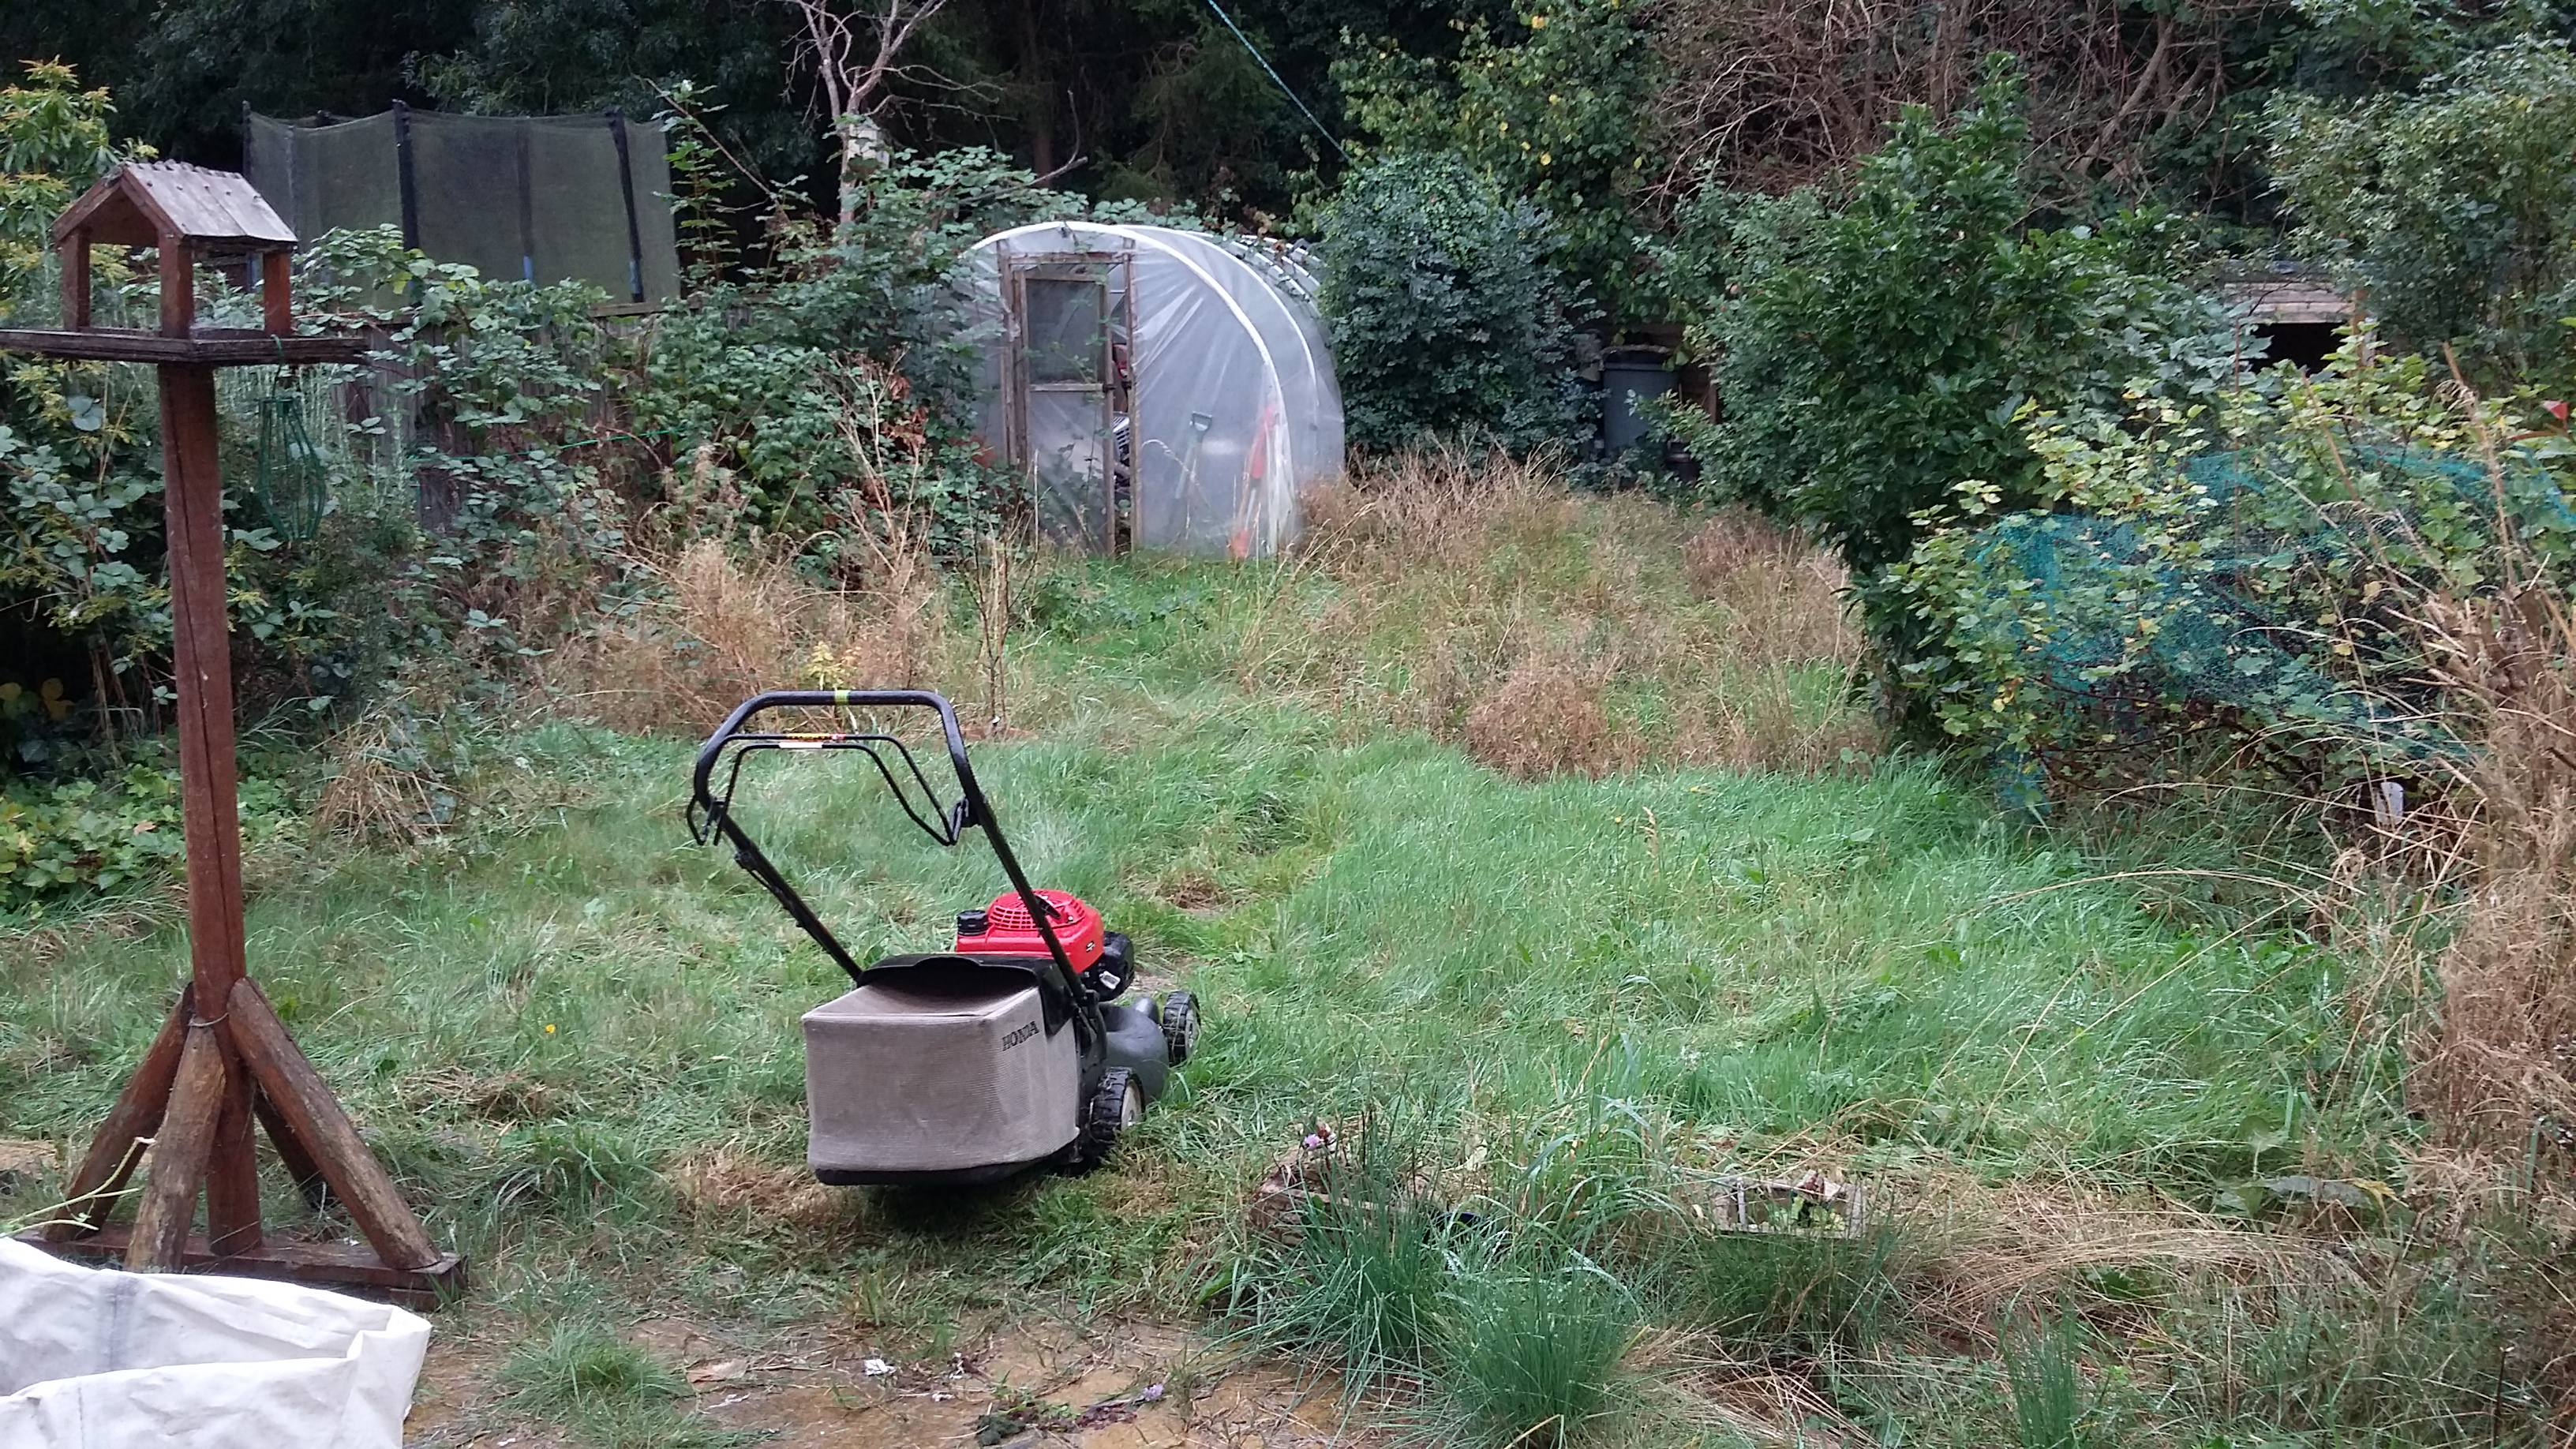 Garden Clearance and Mowing - BEFORE